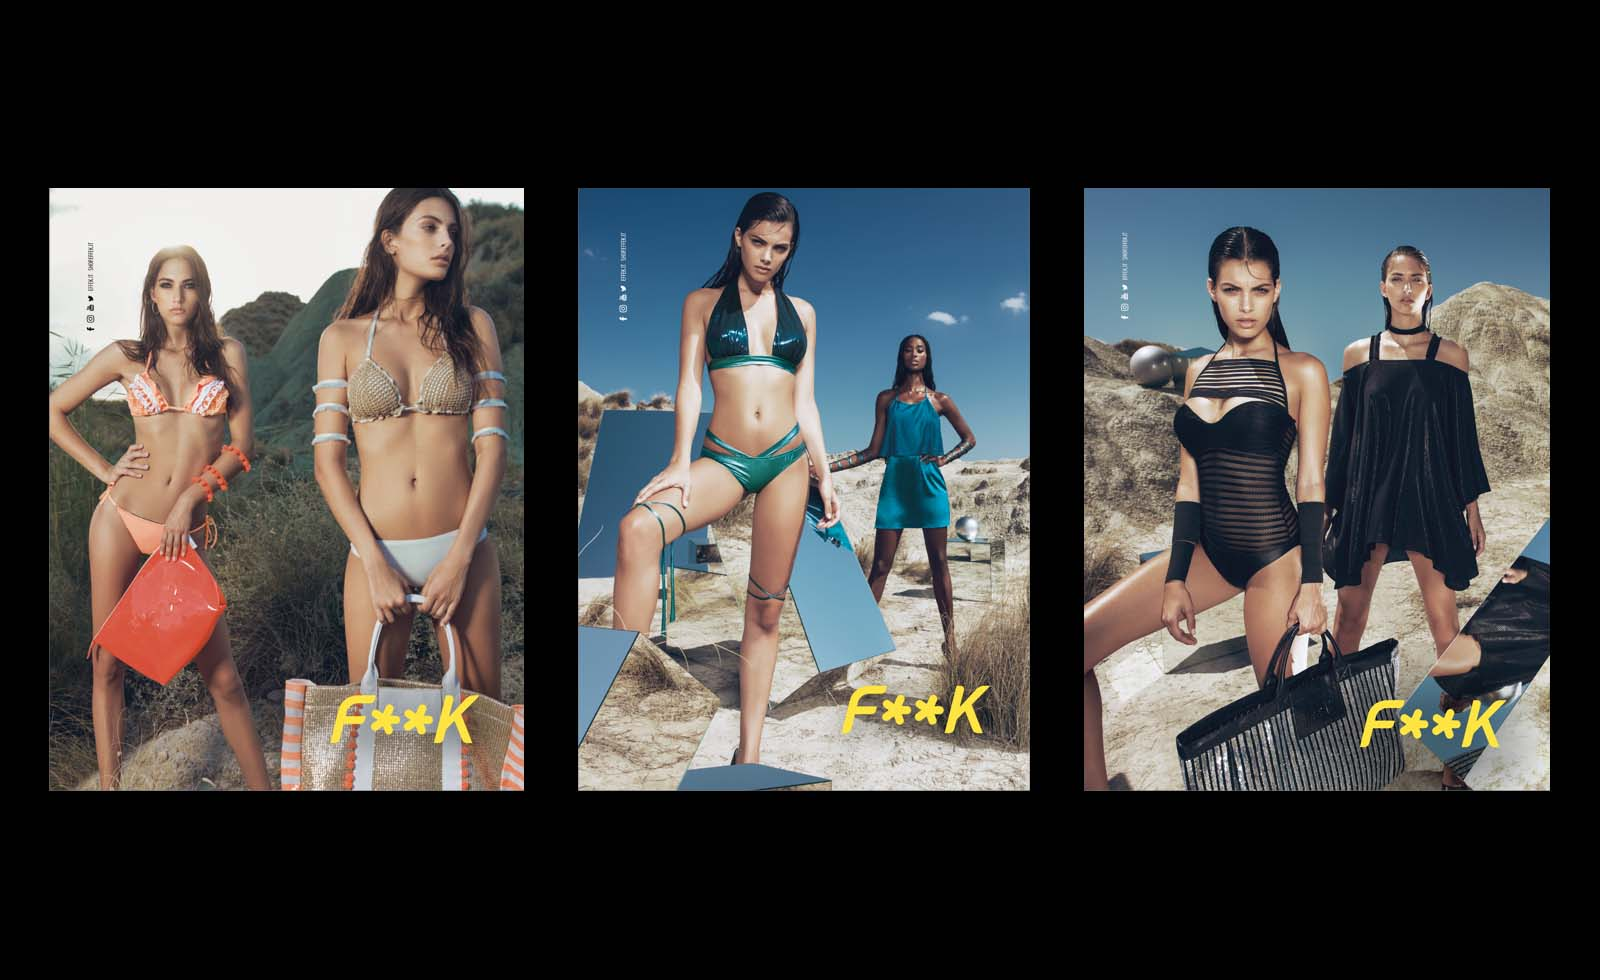 effek f**k swimwear advertising pitscheider maggipinto